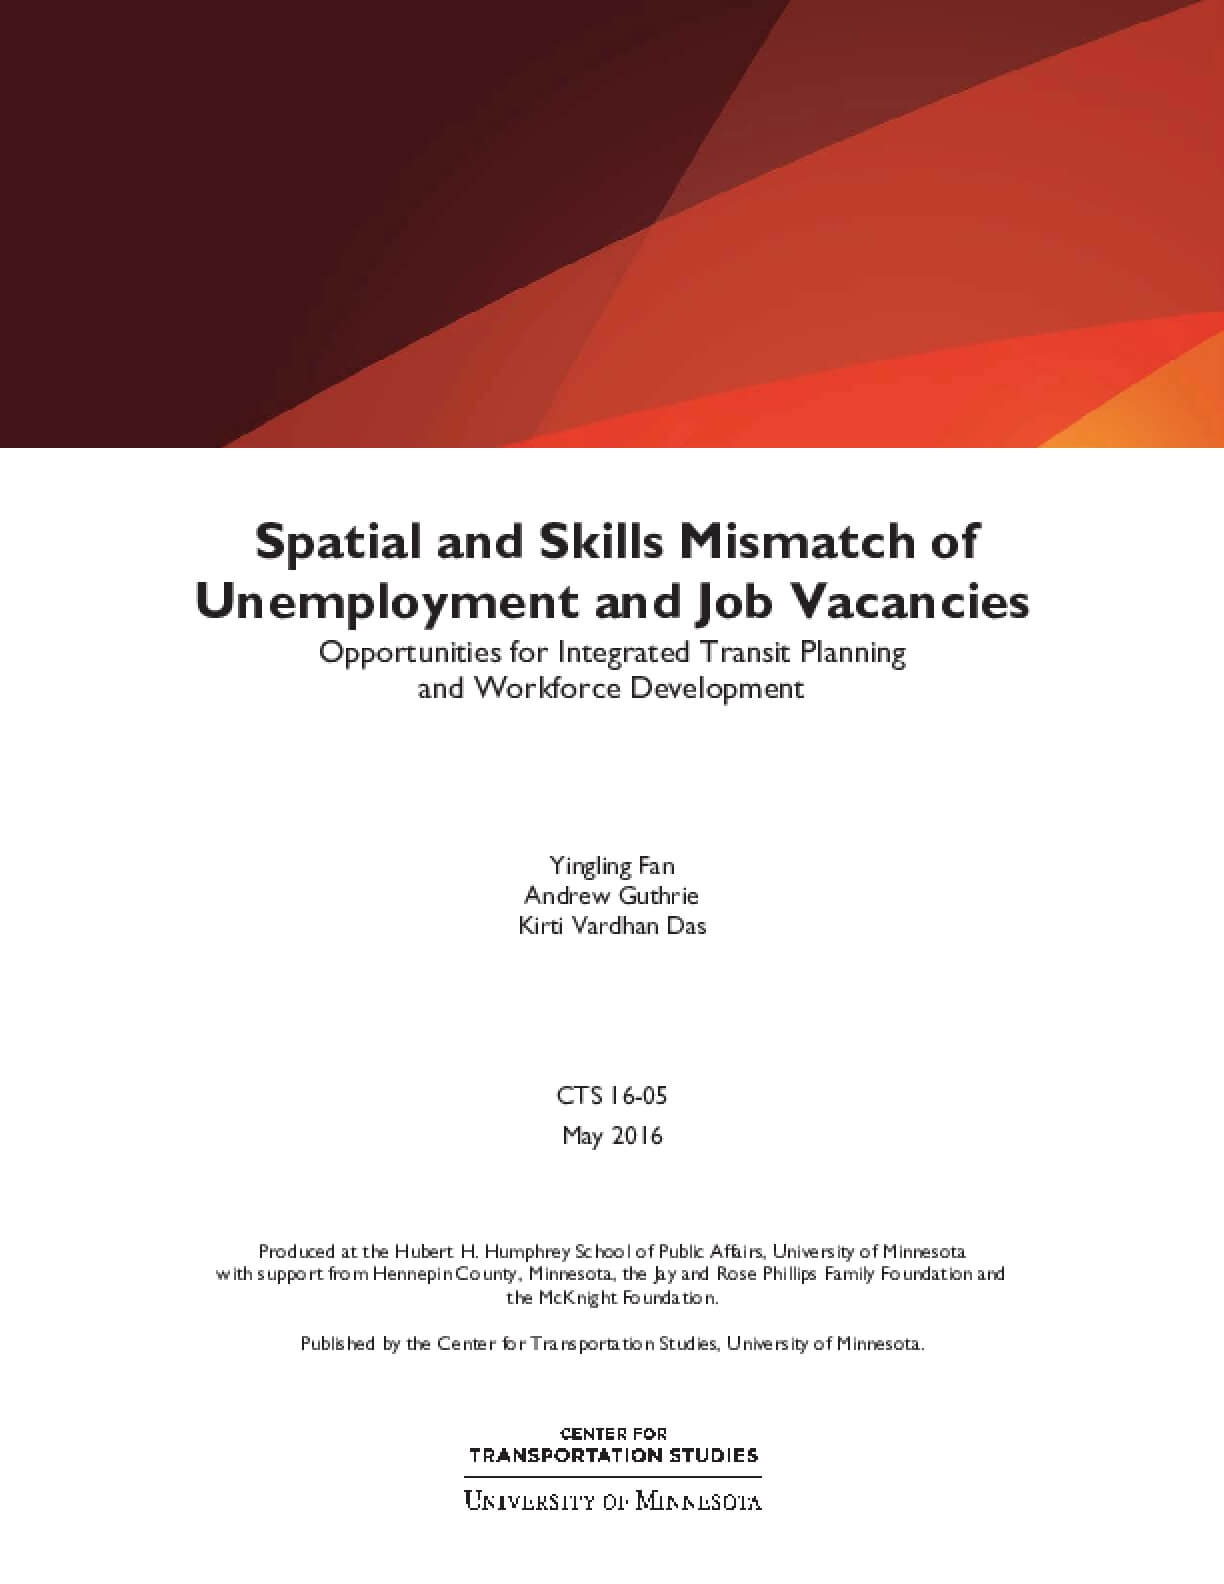 Spatial and Skills Mismatch of Unemployment and Job Vacancies